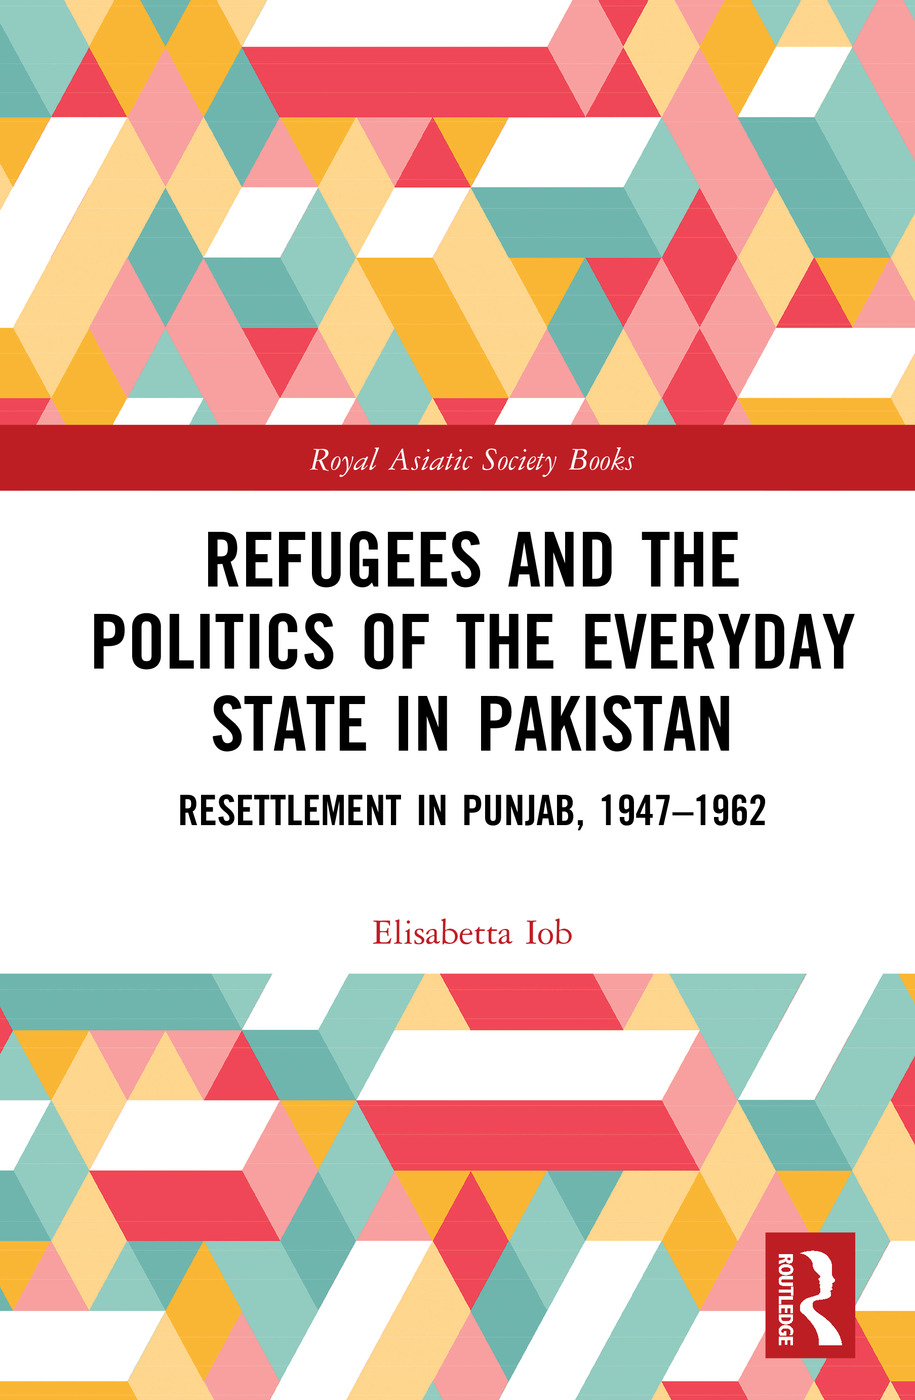 Refugees and the Politics of the Everyday State in Pakistan: Resettlement in Punjab, 1947-1962 book cover